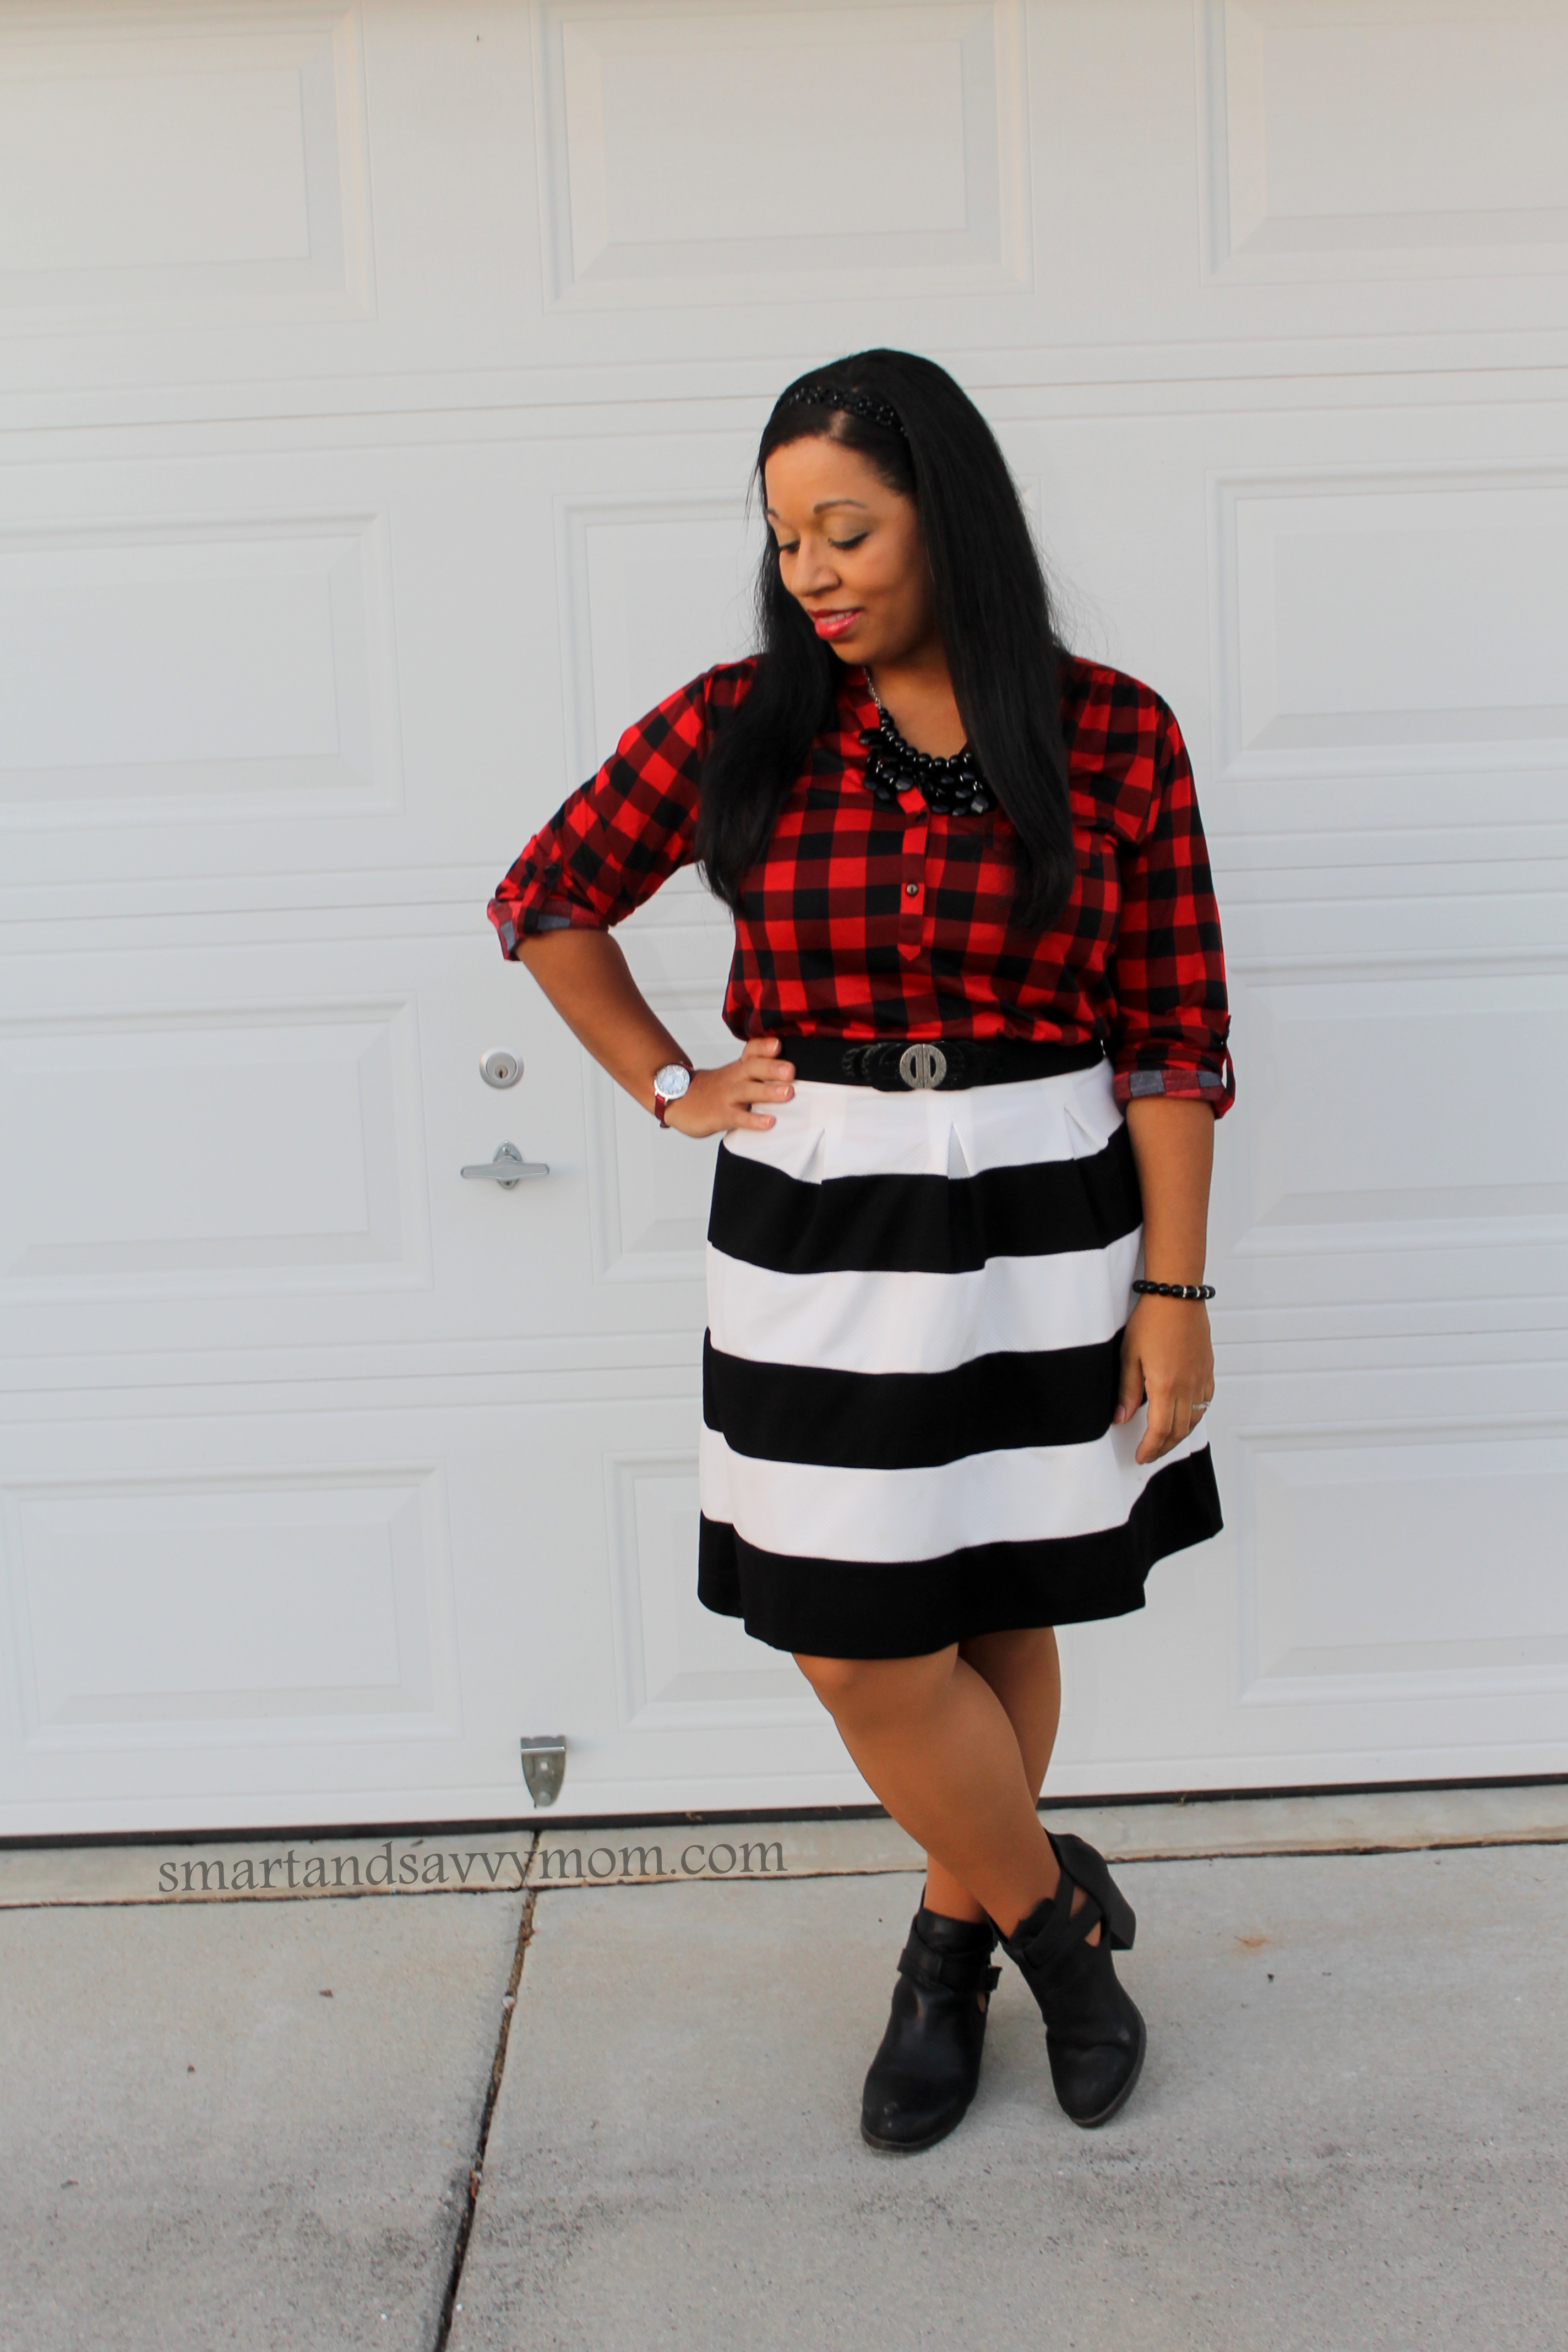 red and black buffalo plaid with black and white stripes, perfect pattern mixing and modest outfit idea